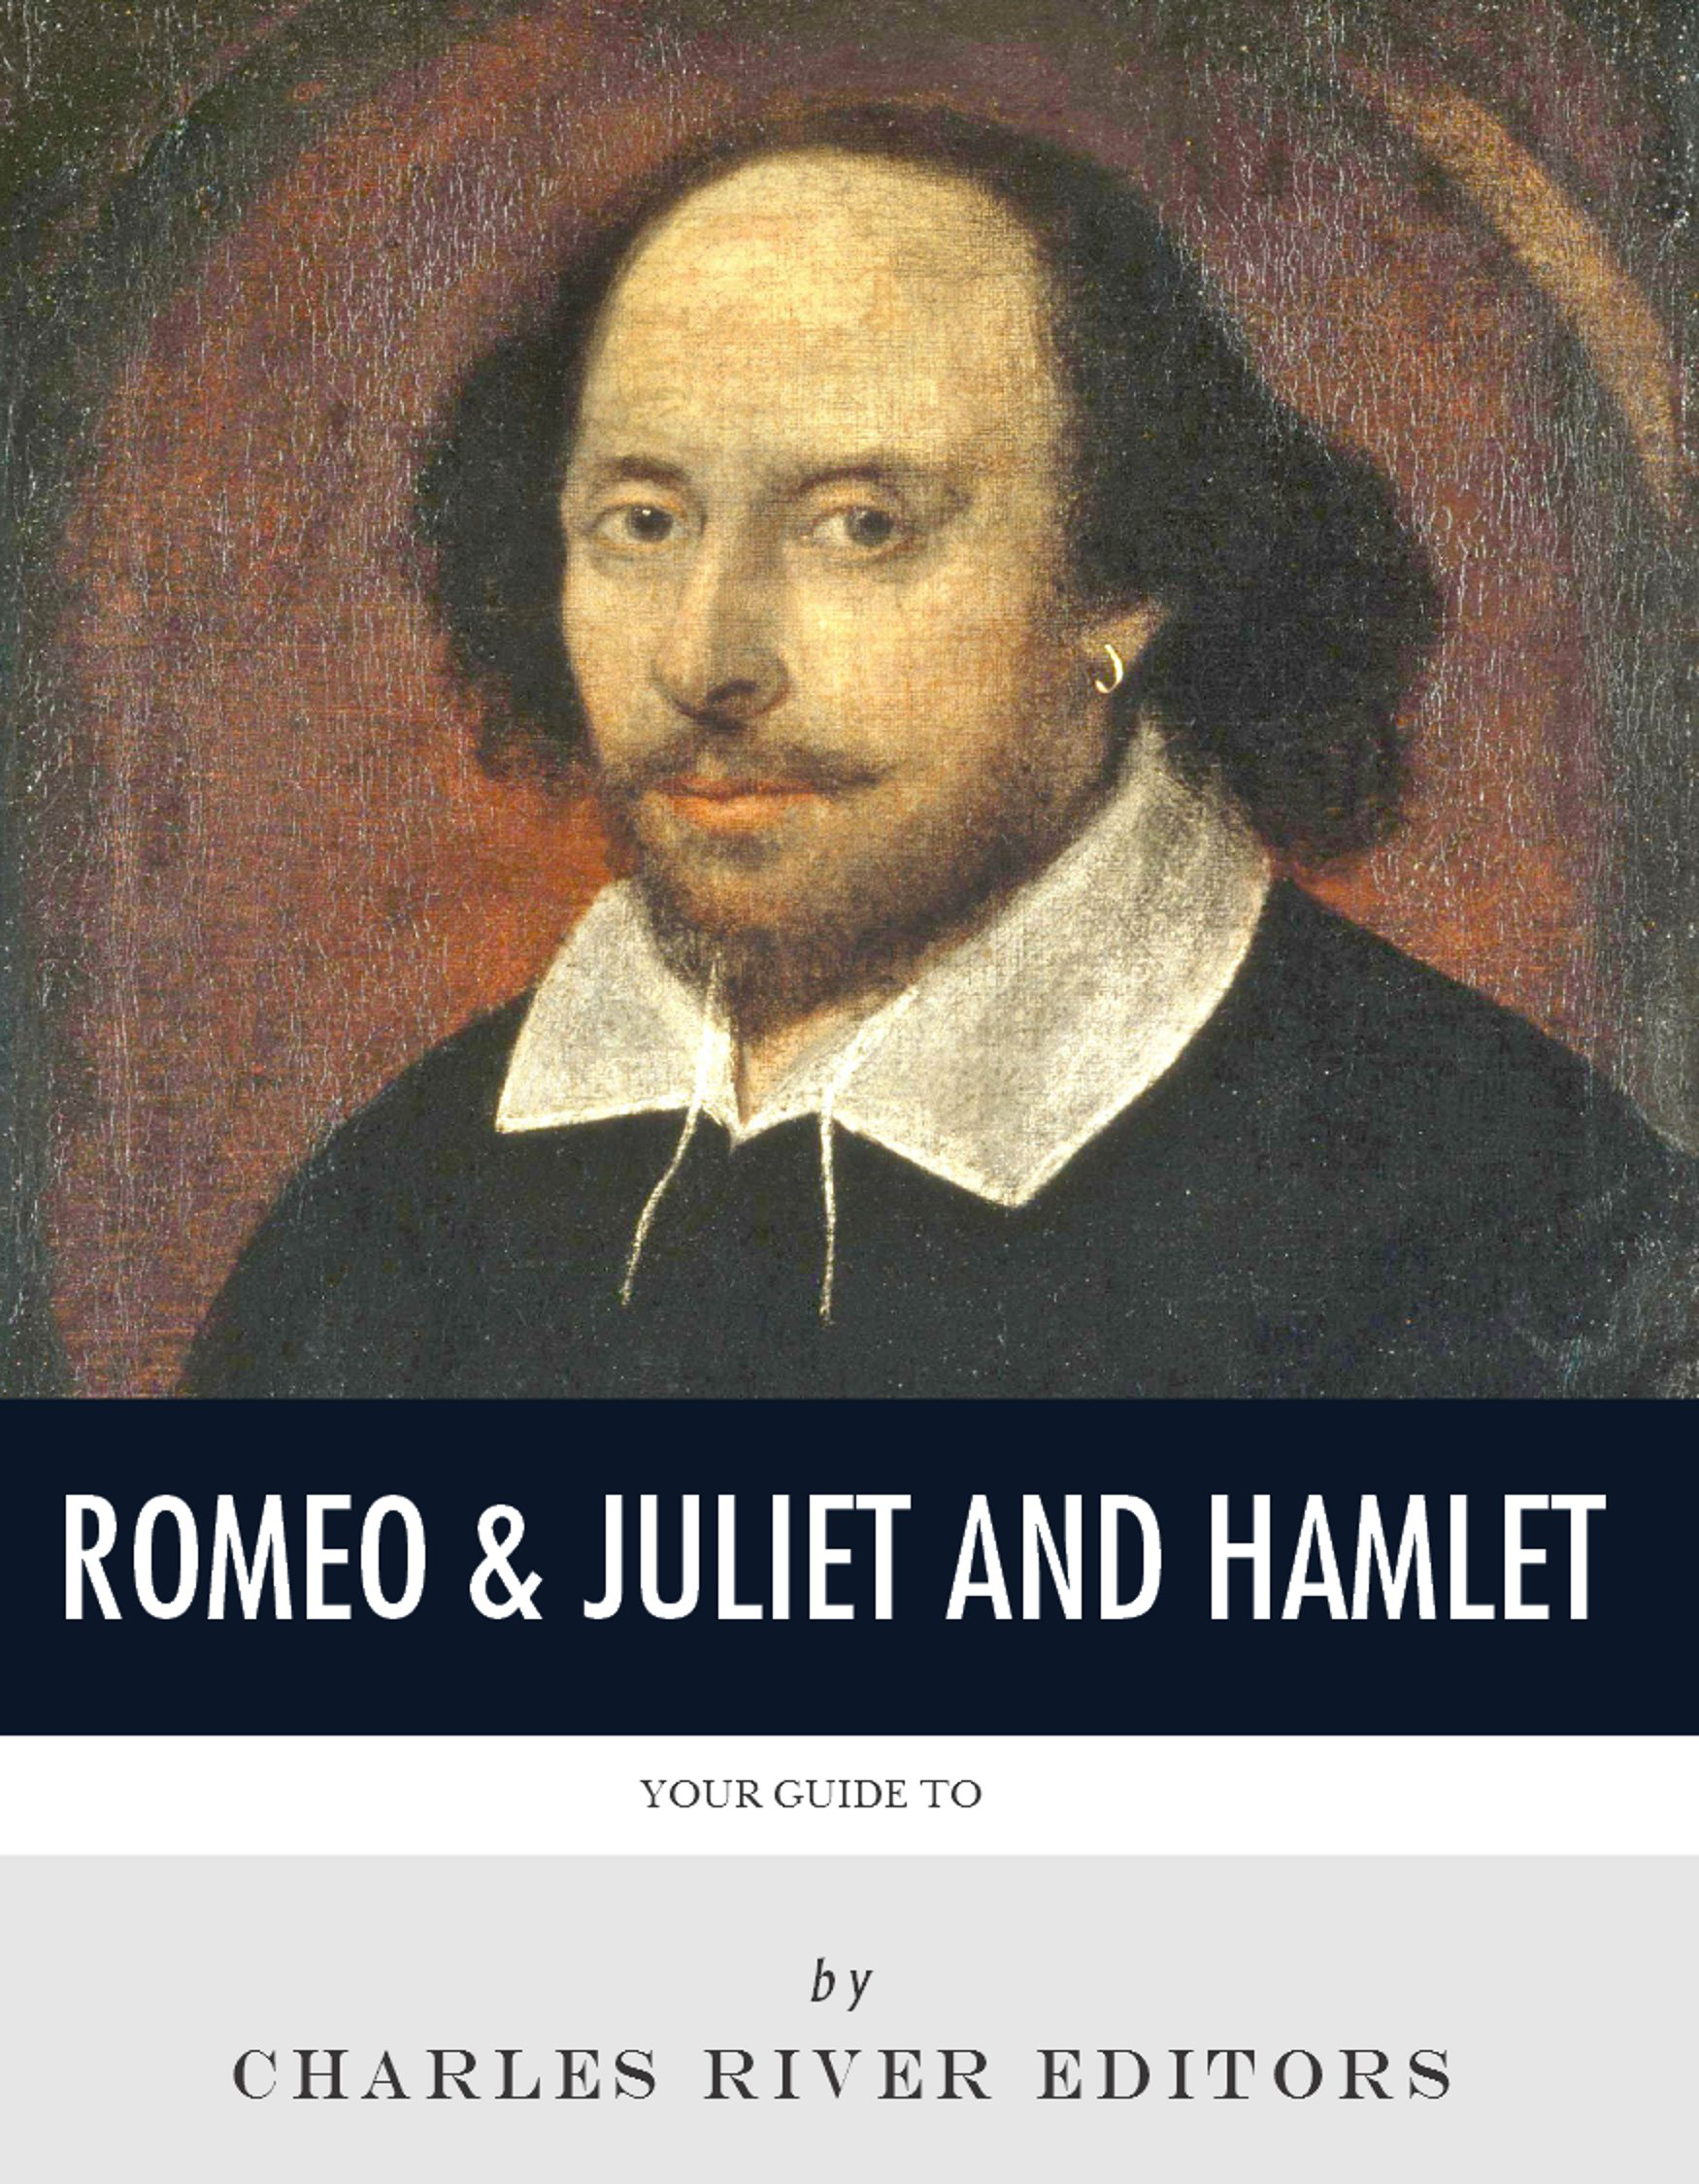 Your Guide to Hamlet & Romeo and Juliet